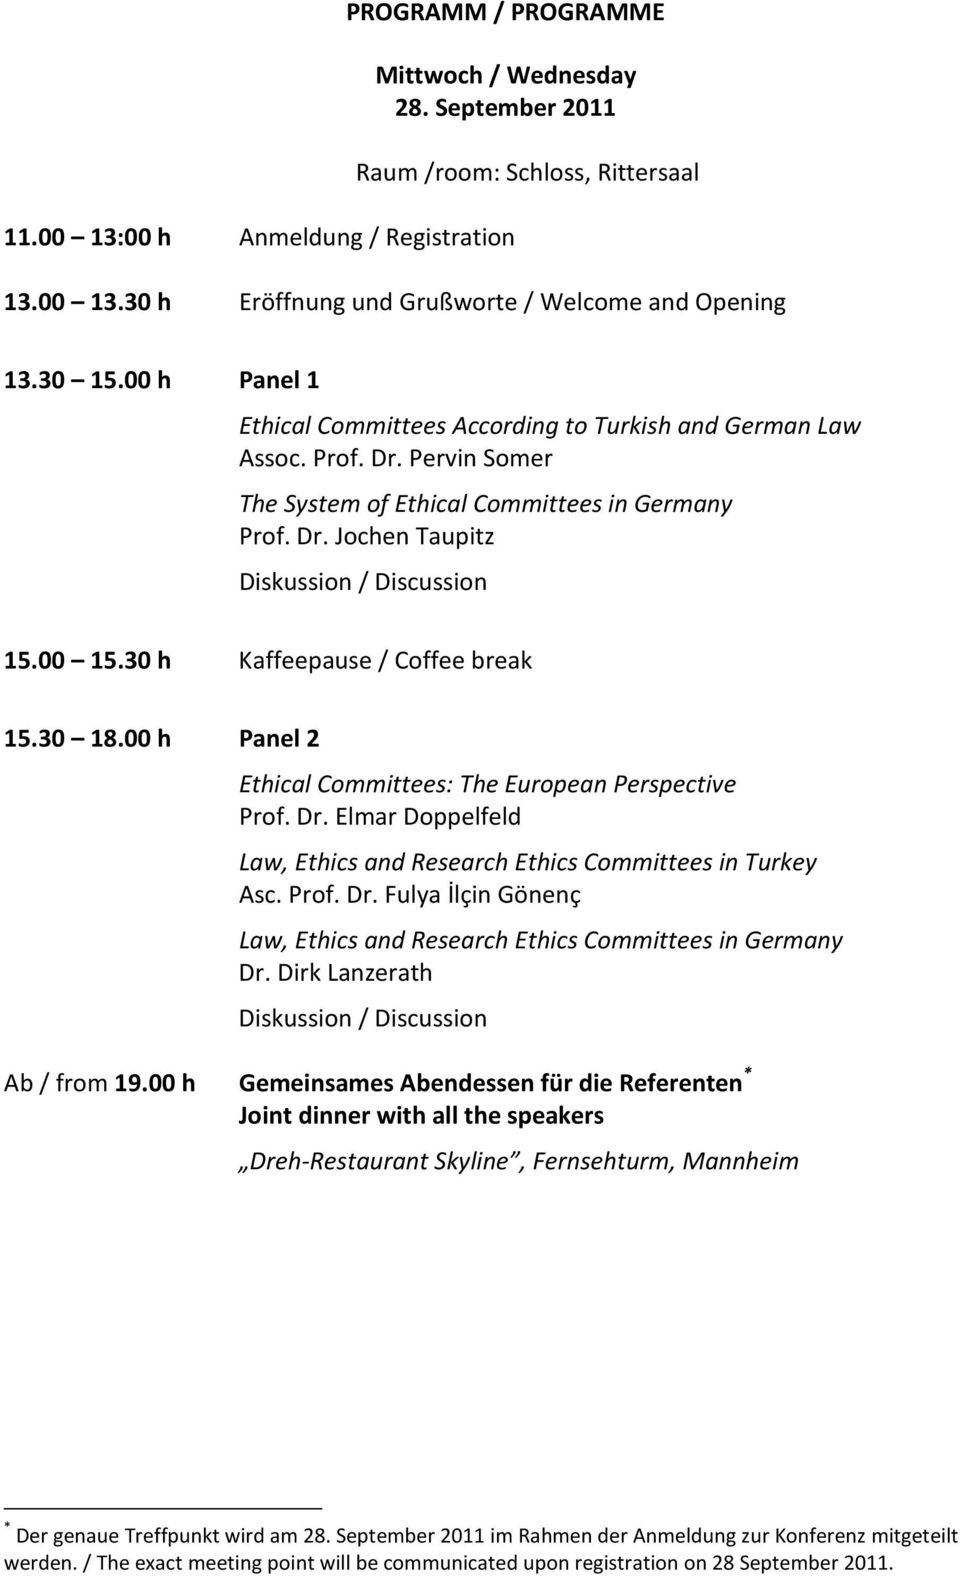 30 h Kaffeepause / Coffee break 15.30 18.00 h Panel 2 Ethical Committees: The European Perspective Prof. Dr. Elmar Doppelfeld Law, Ethics and Research Ethics Committees in Turkey Asc. Prof. Dr. Fulya İlçin Gönenç Law, Ethics and Research Ethics Committees in Germany Dr.